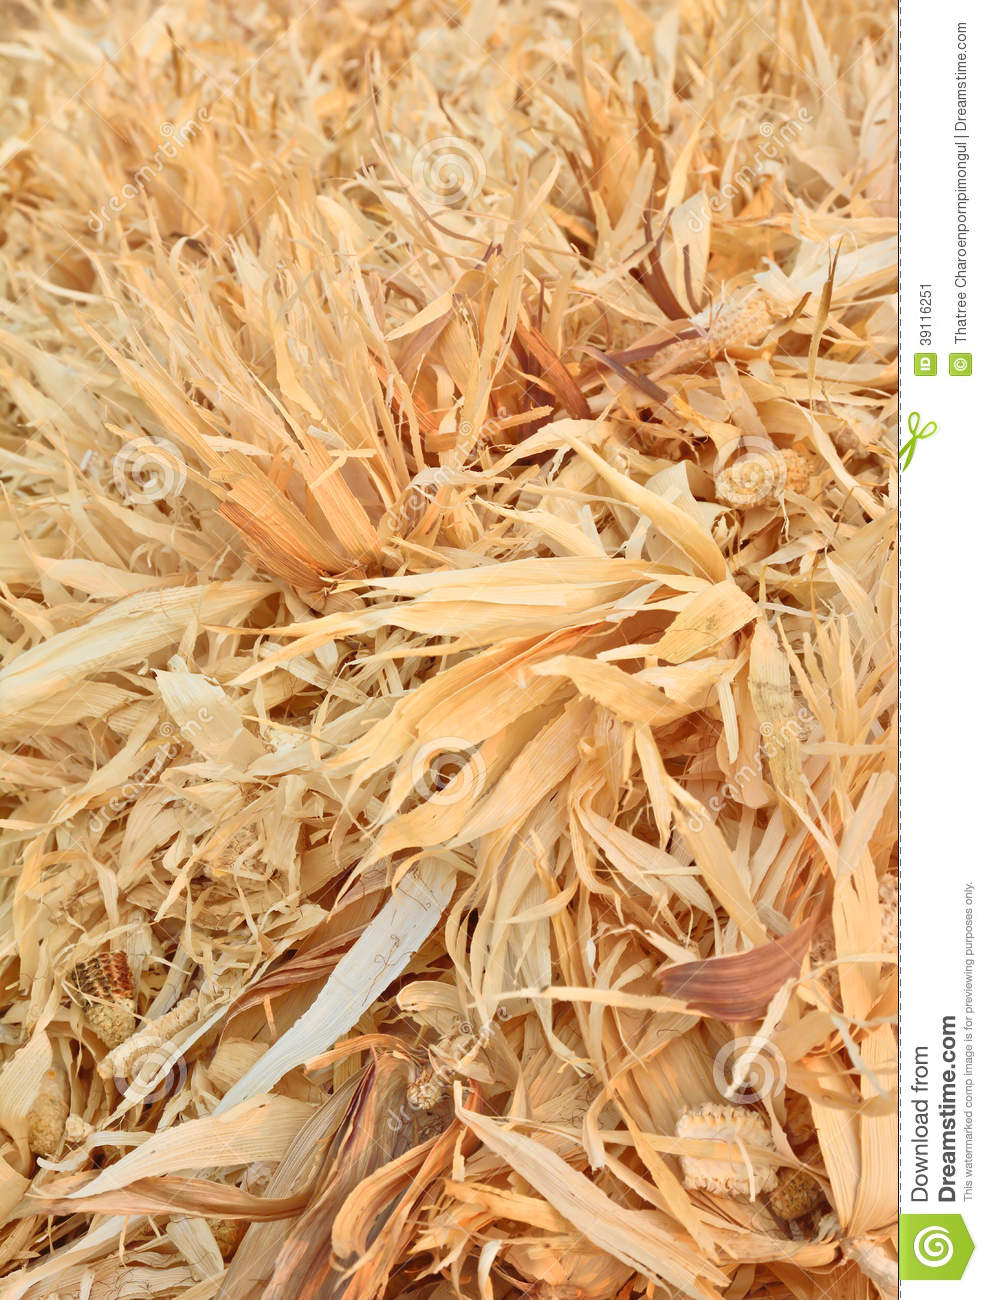 Dry corncobs and corn leaves